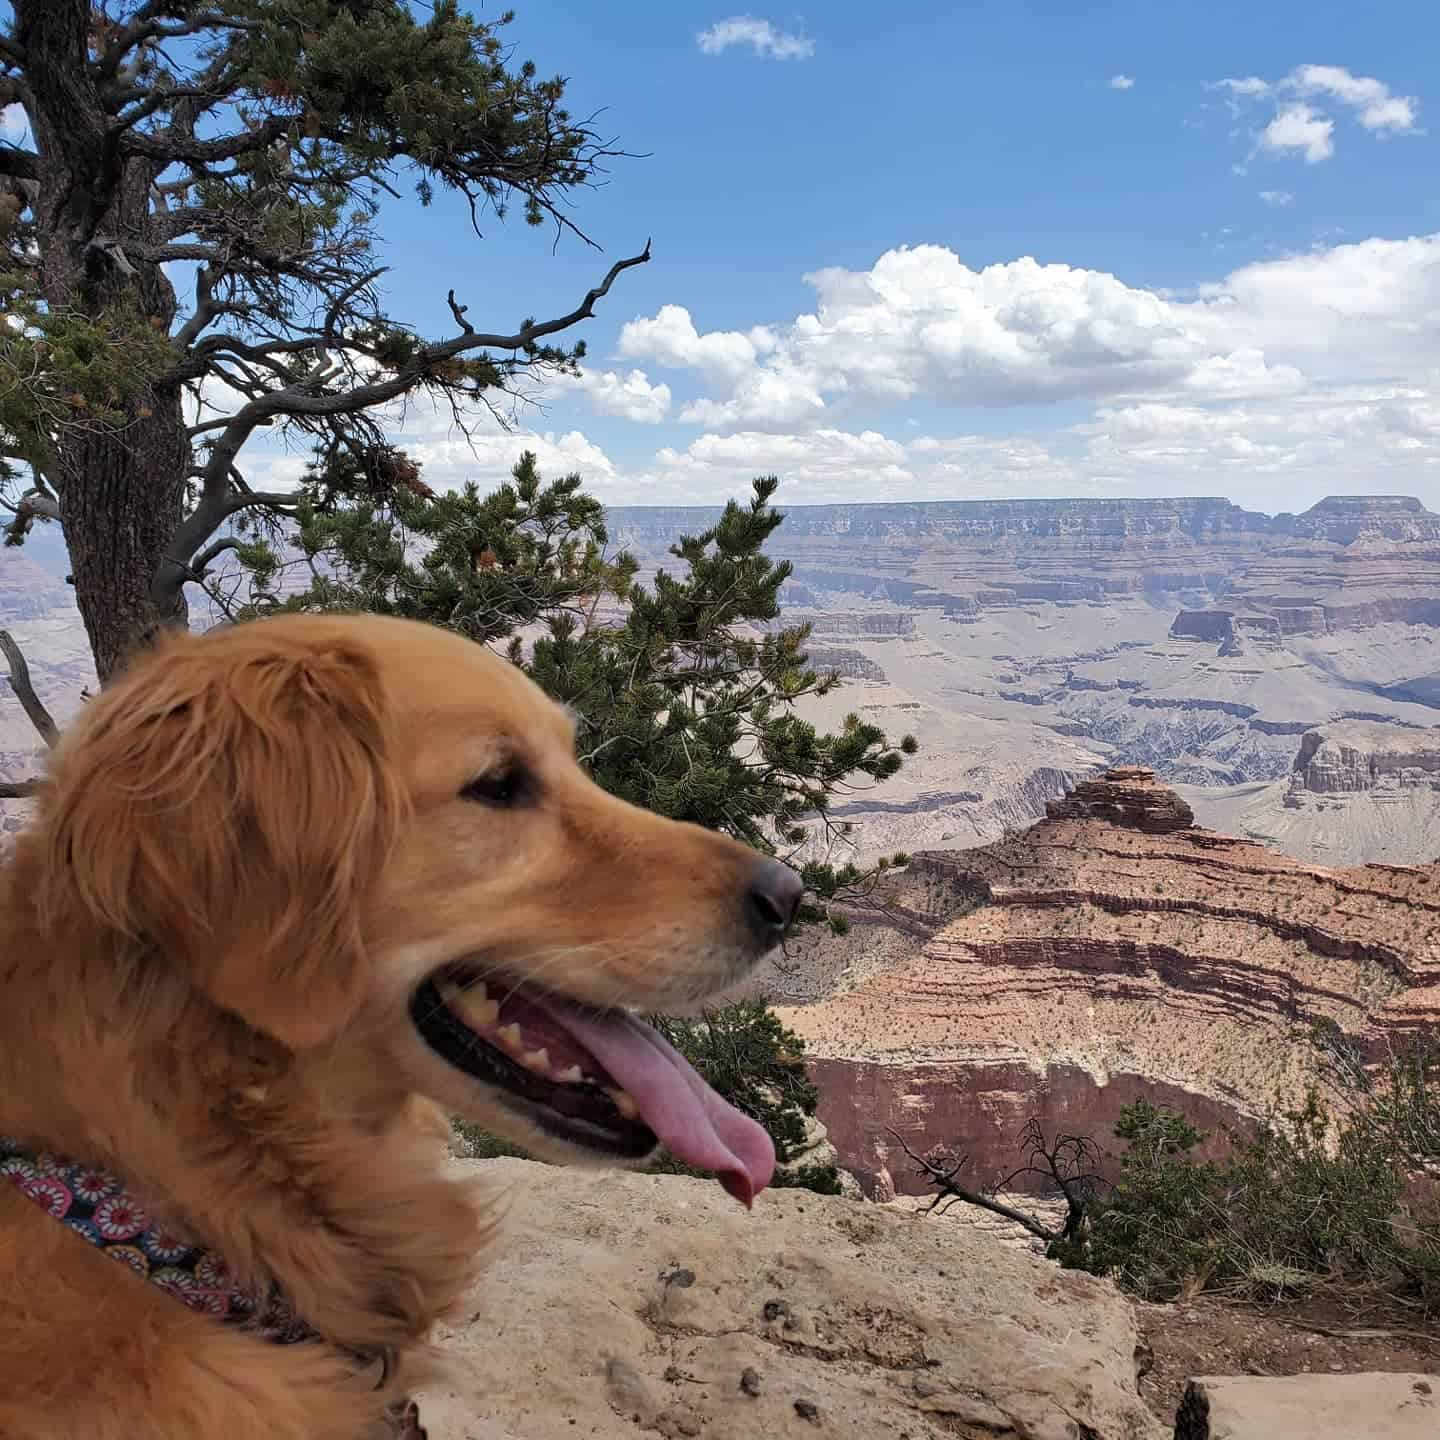 Beautiful Golden Retriever dog overlooking a spectacular canyon view.